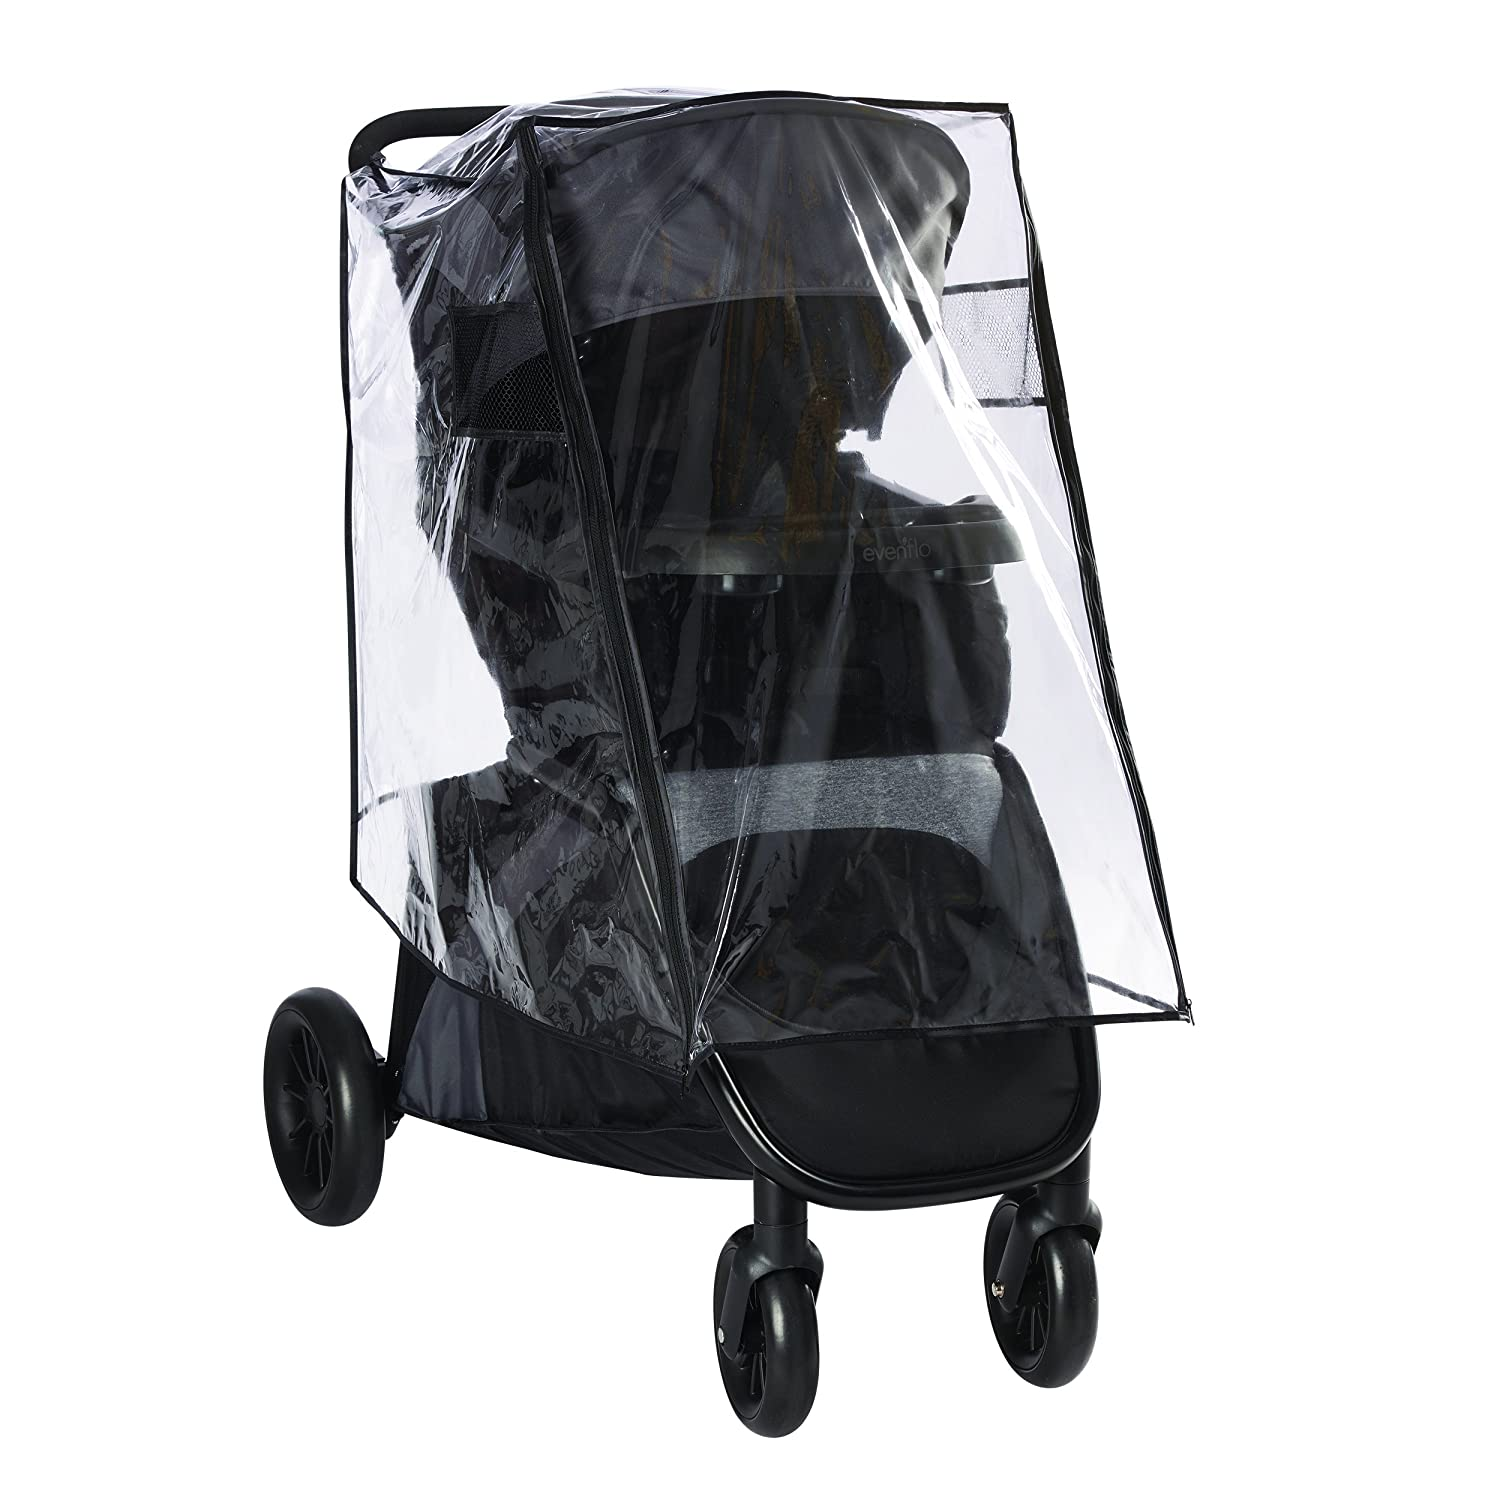 Evenflo Stroller Weather Shield & Rain Cover 630436